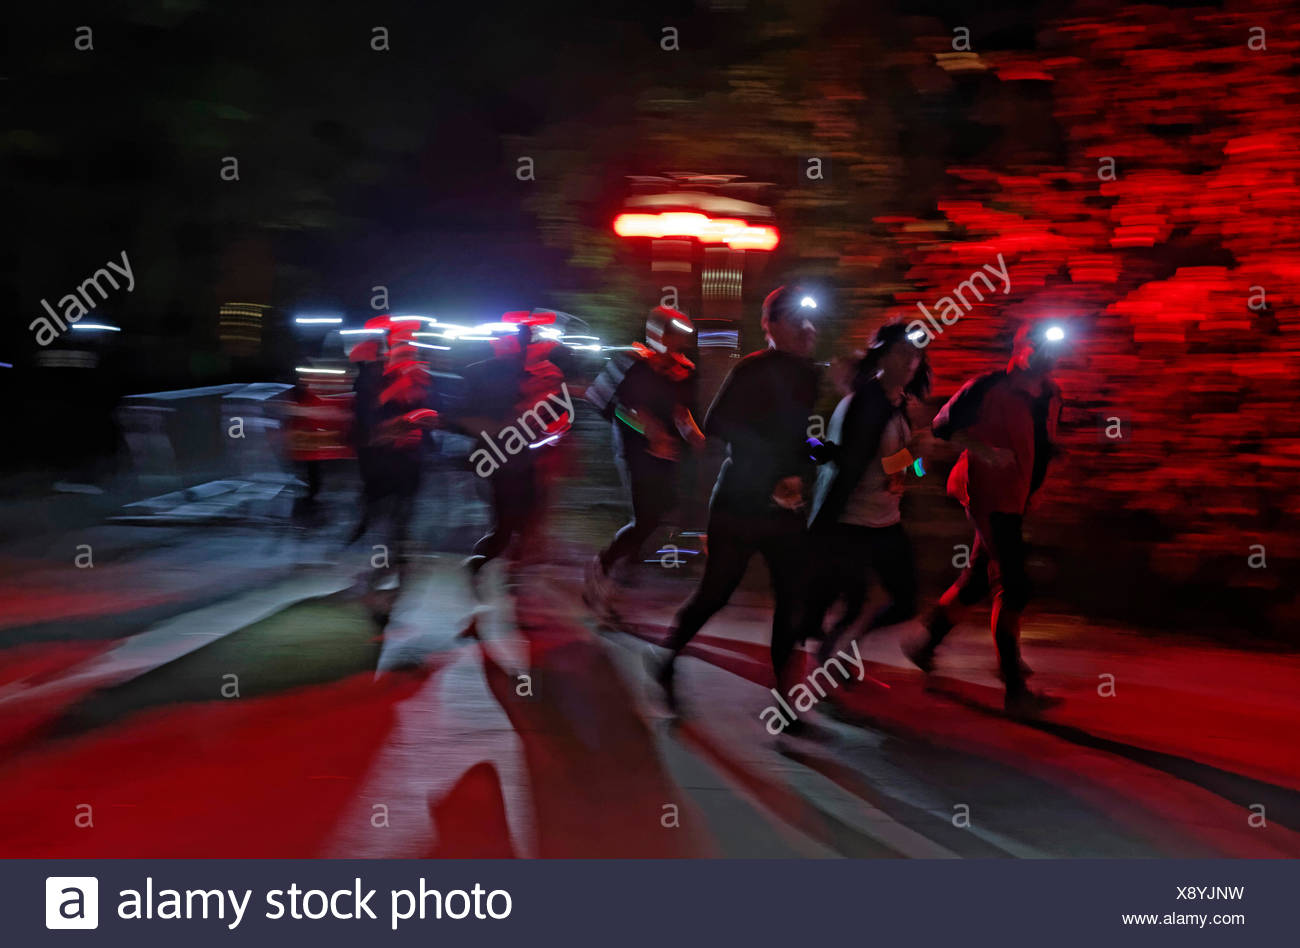 Runners wearing headlamps during a night run, Landschaftspark Duisburg-Nord, landscape park at a disused industrial steel works - Stock Image